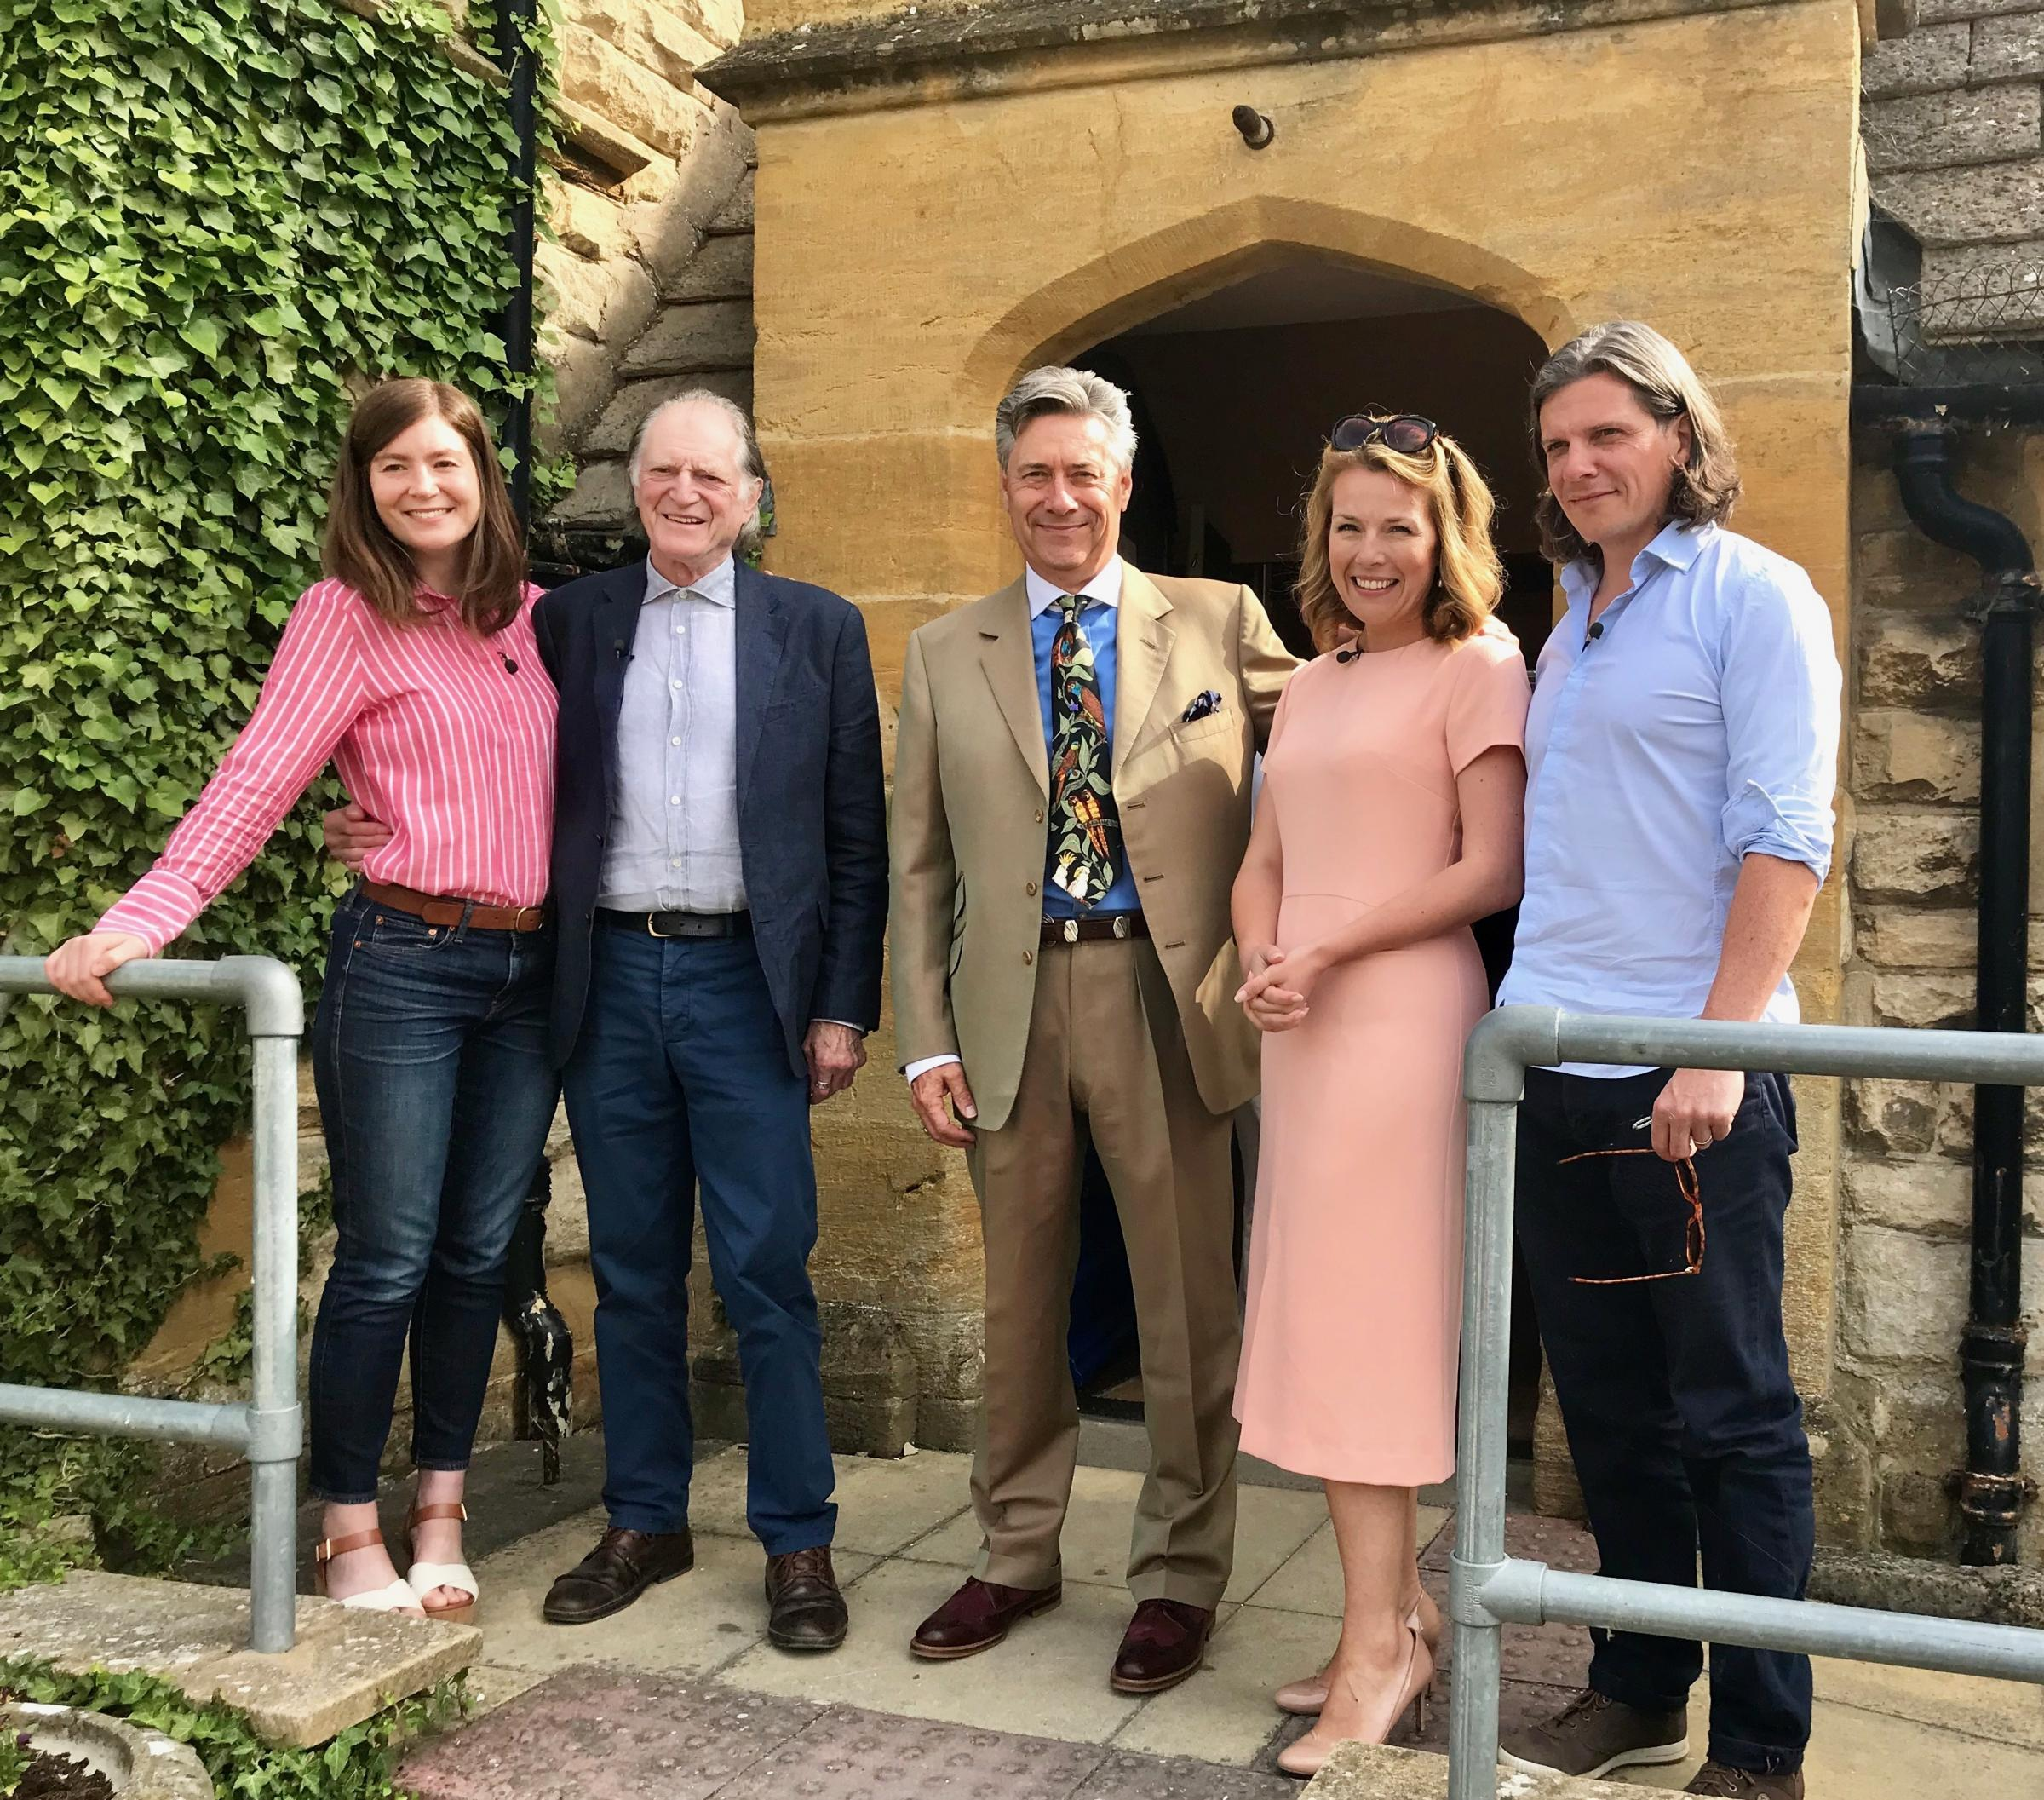 BIDDING: Auctioneer Nicholas Granger and his parrot Bella with celebrities David Bradley from Game of Thrones and Harry Potter, Nigel Harman of Downton Abbey and Eastenders together with experts Christina Trevanion and Natasha Rankin.